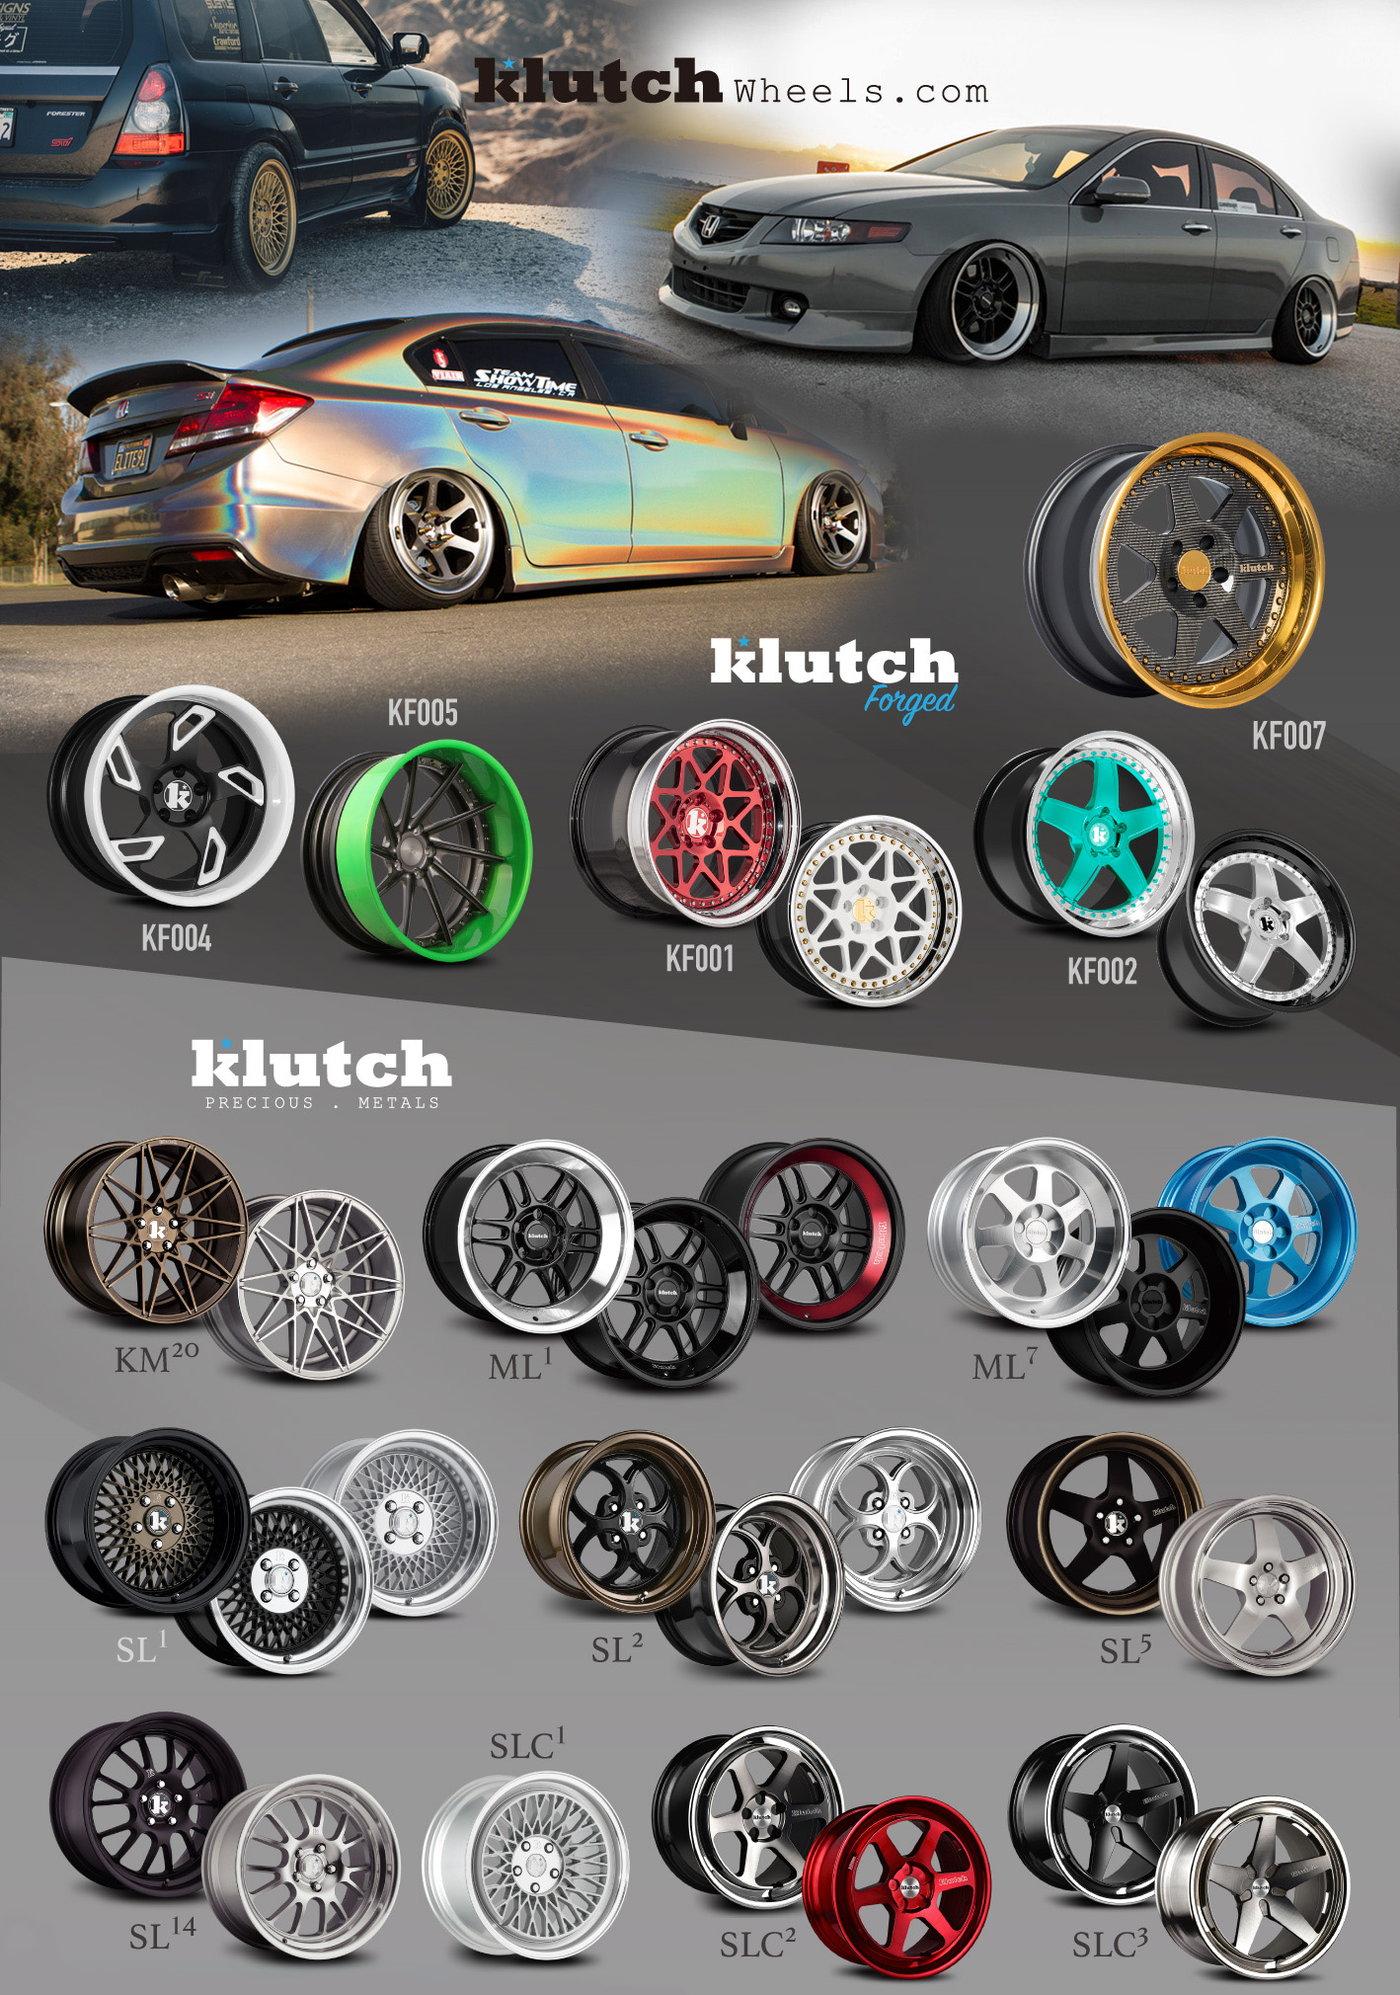 hight resolution of contact us at 626 968 8913 steven conceptonewheelsusa com send me a pm